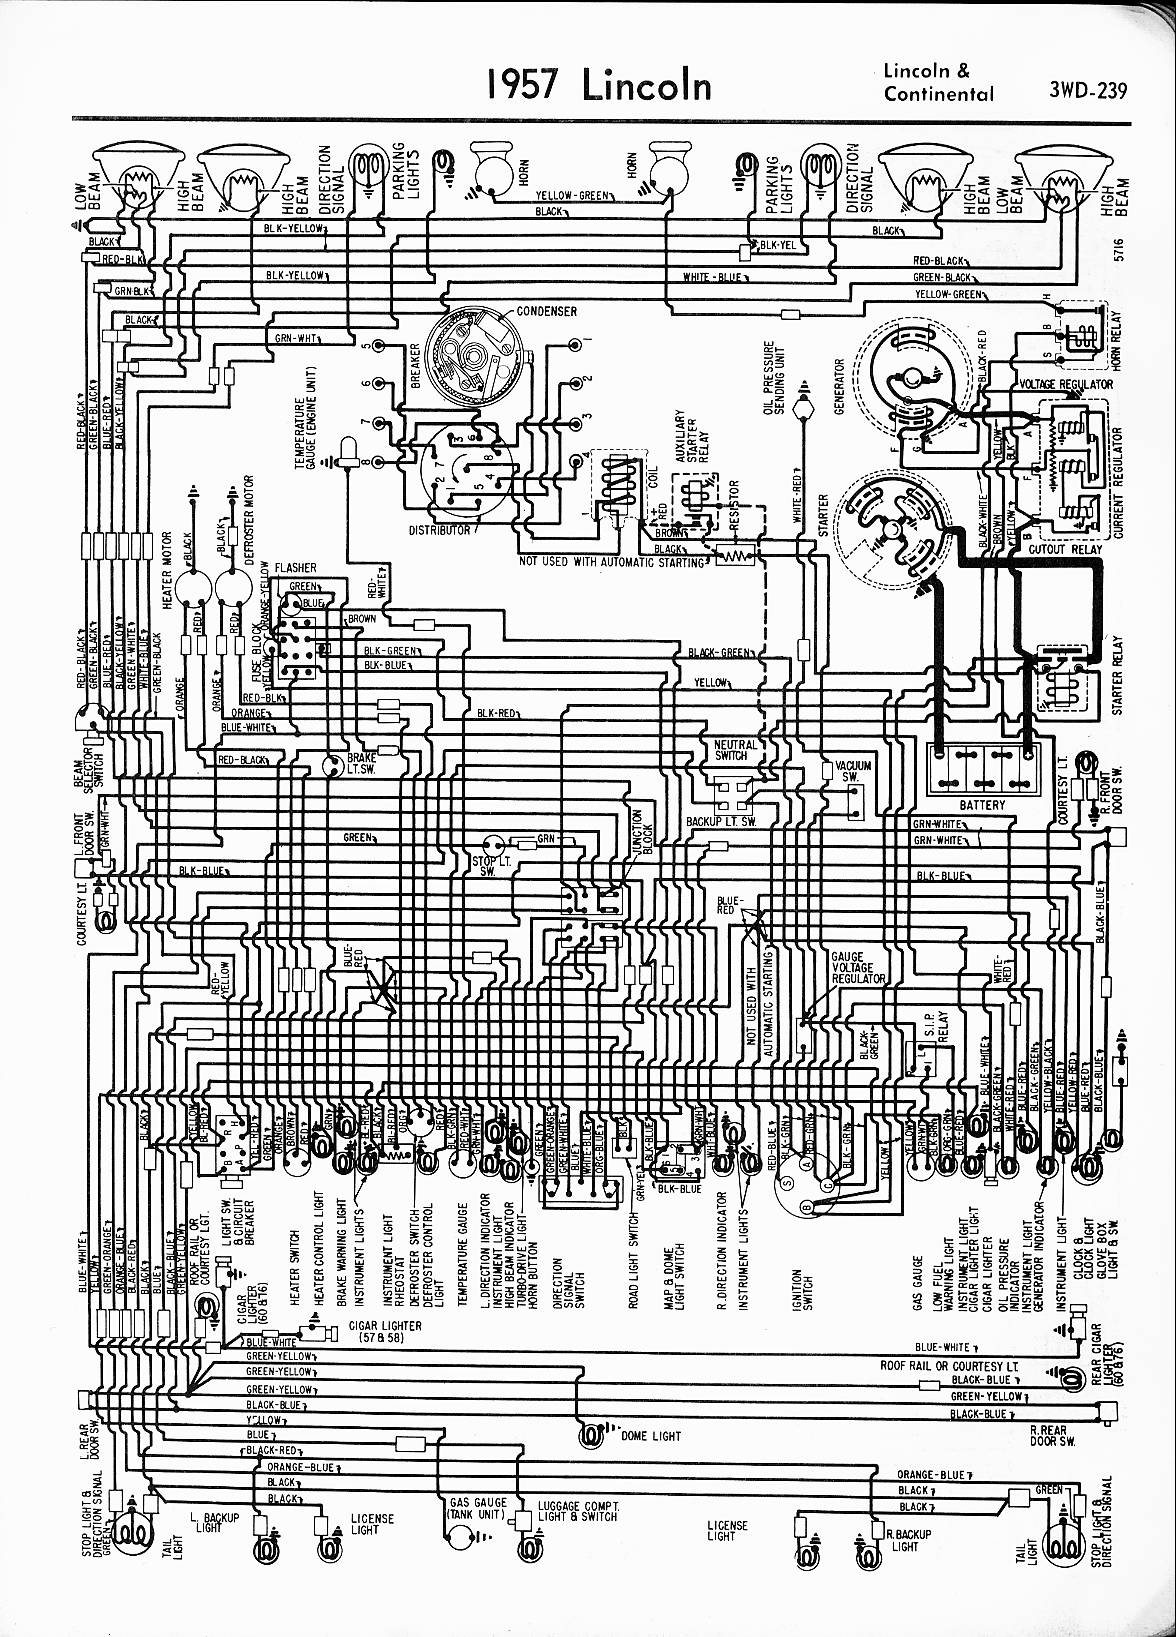 Lincoln Wiring Diagrams 1957 1965 Diagram For Domestic Fuse Board Continental